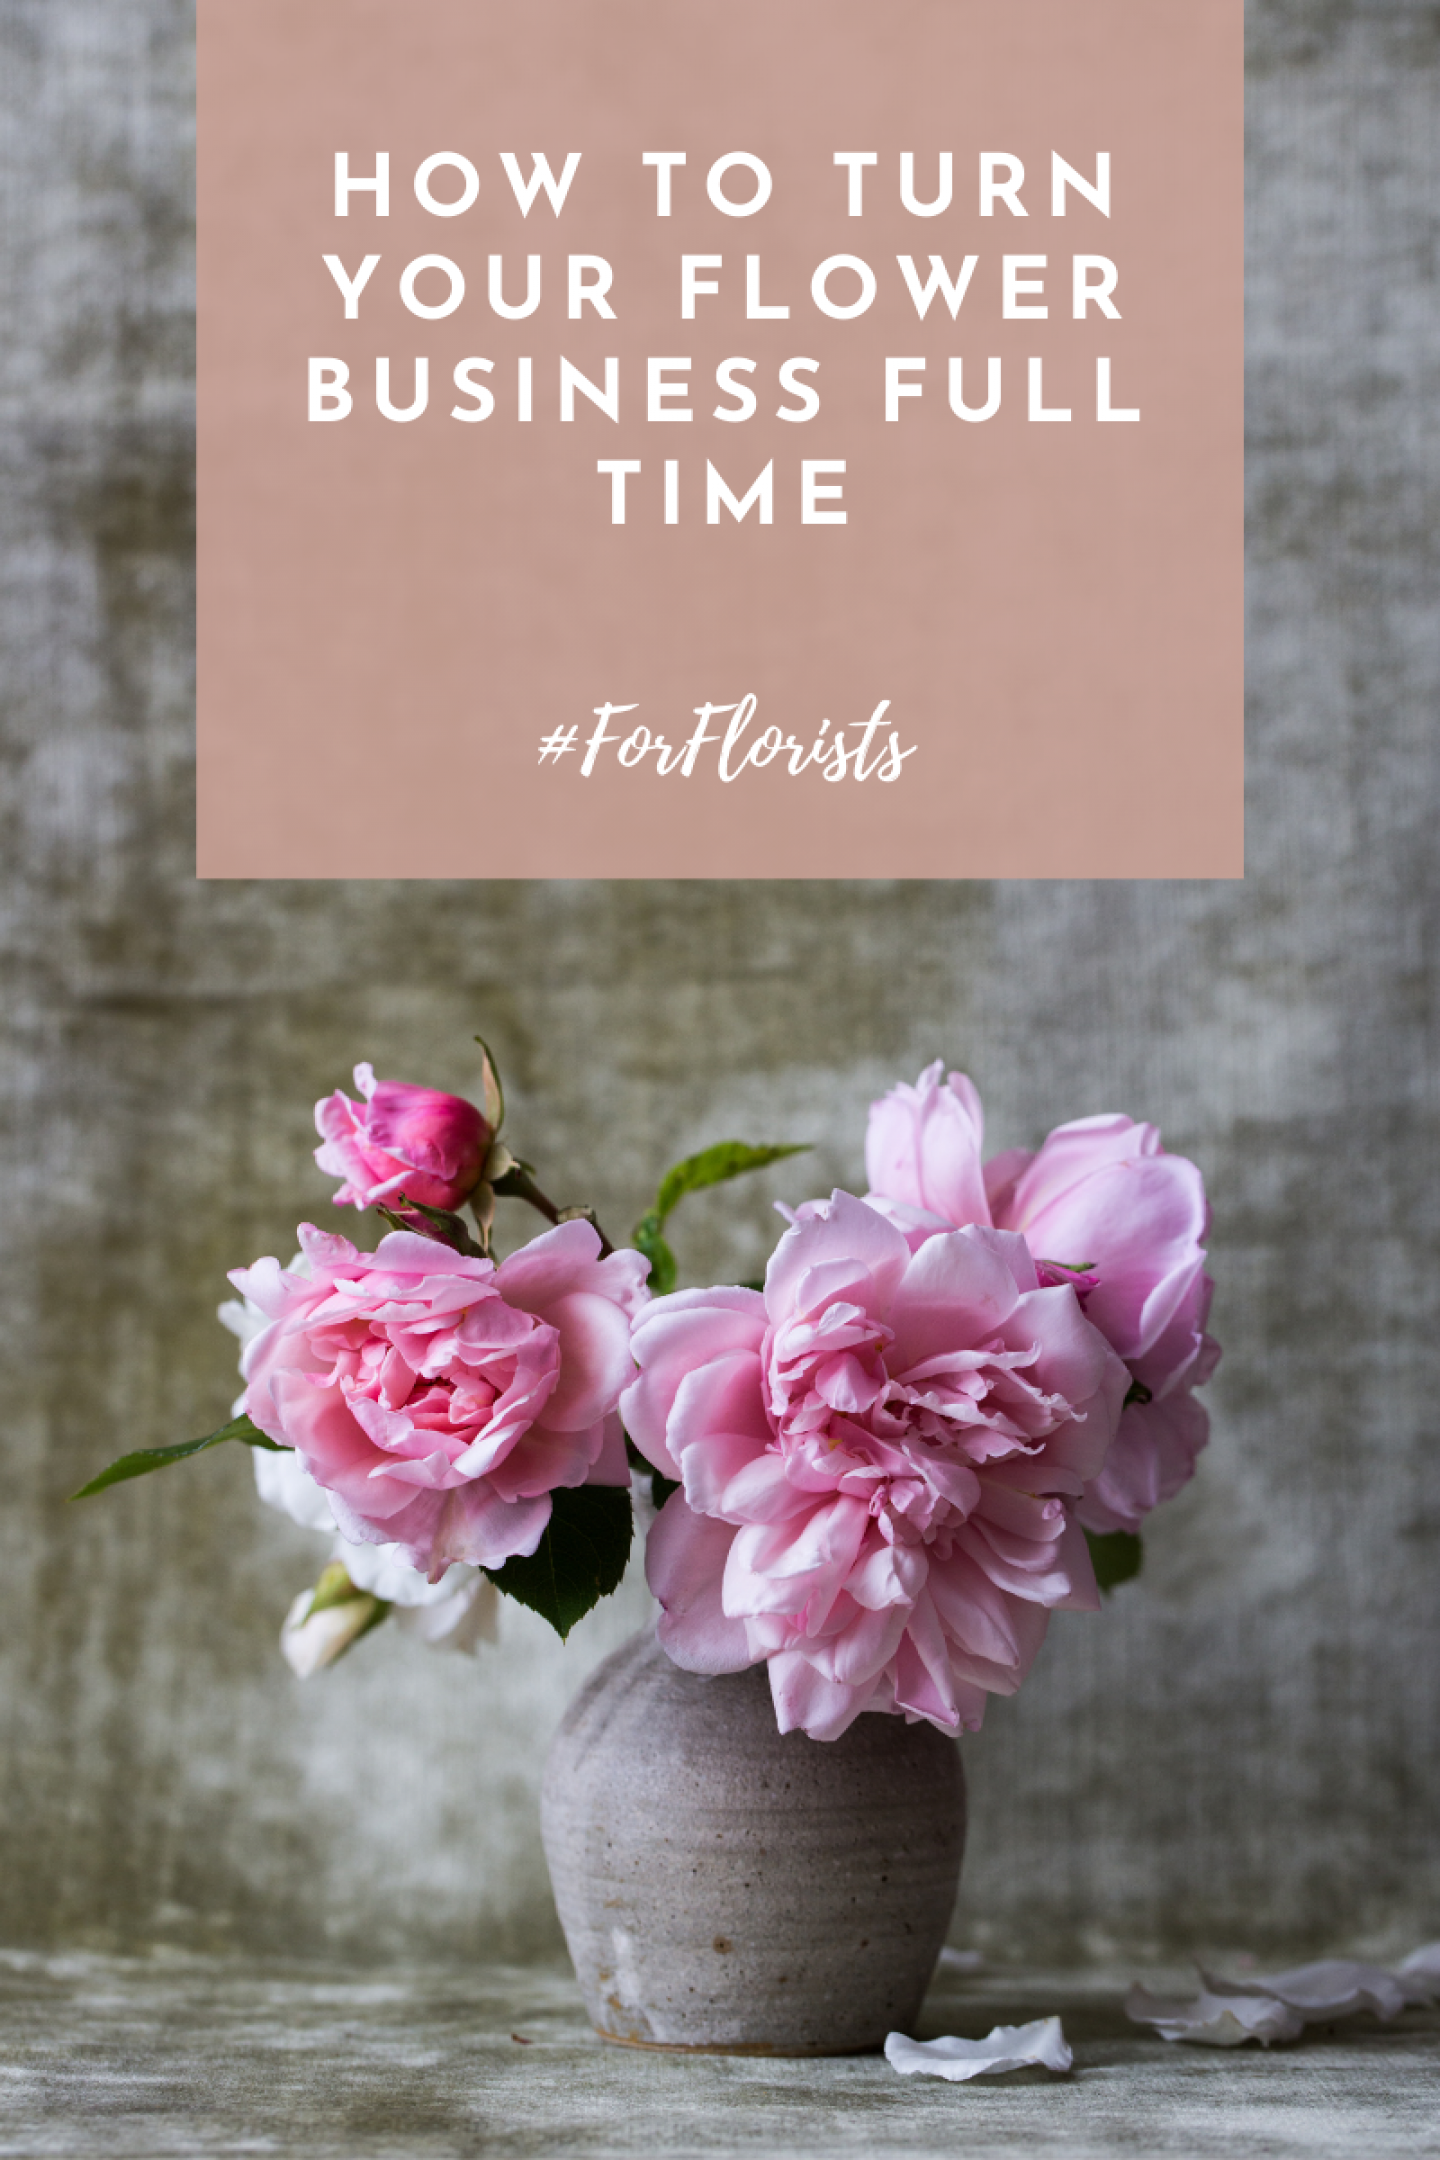 Thrive Podcast #ForFlorists Blog Cover Photos (6)